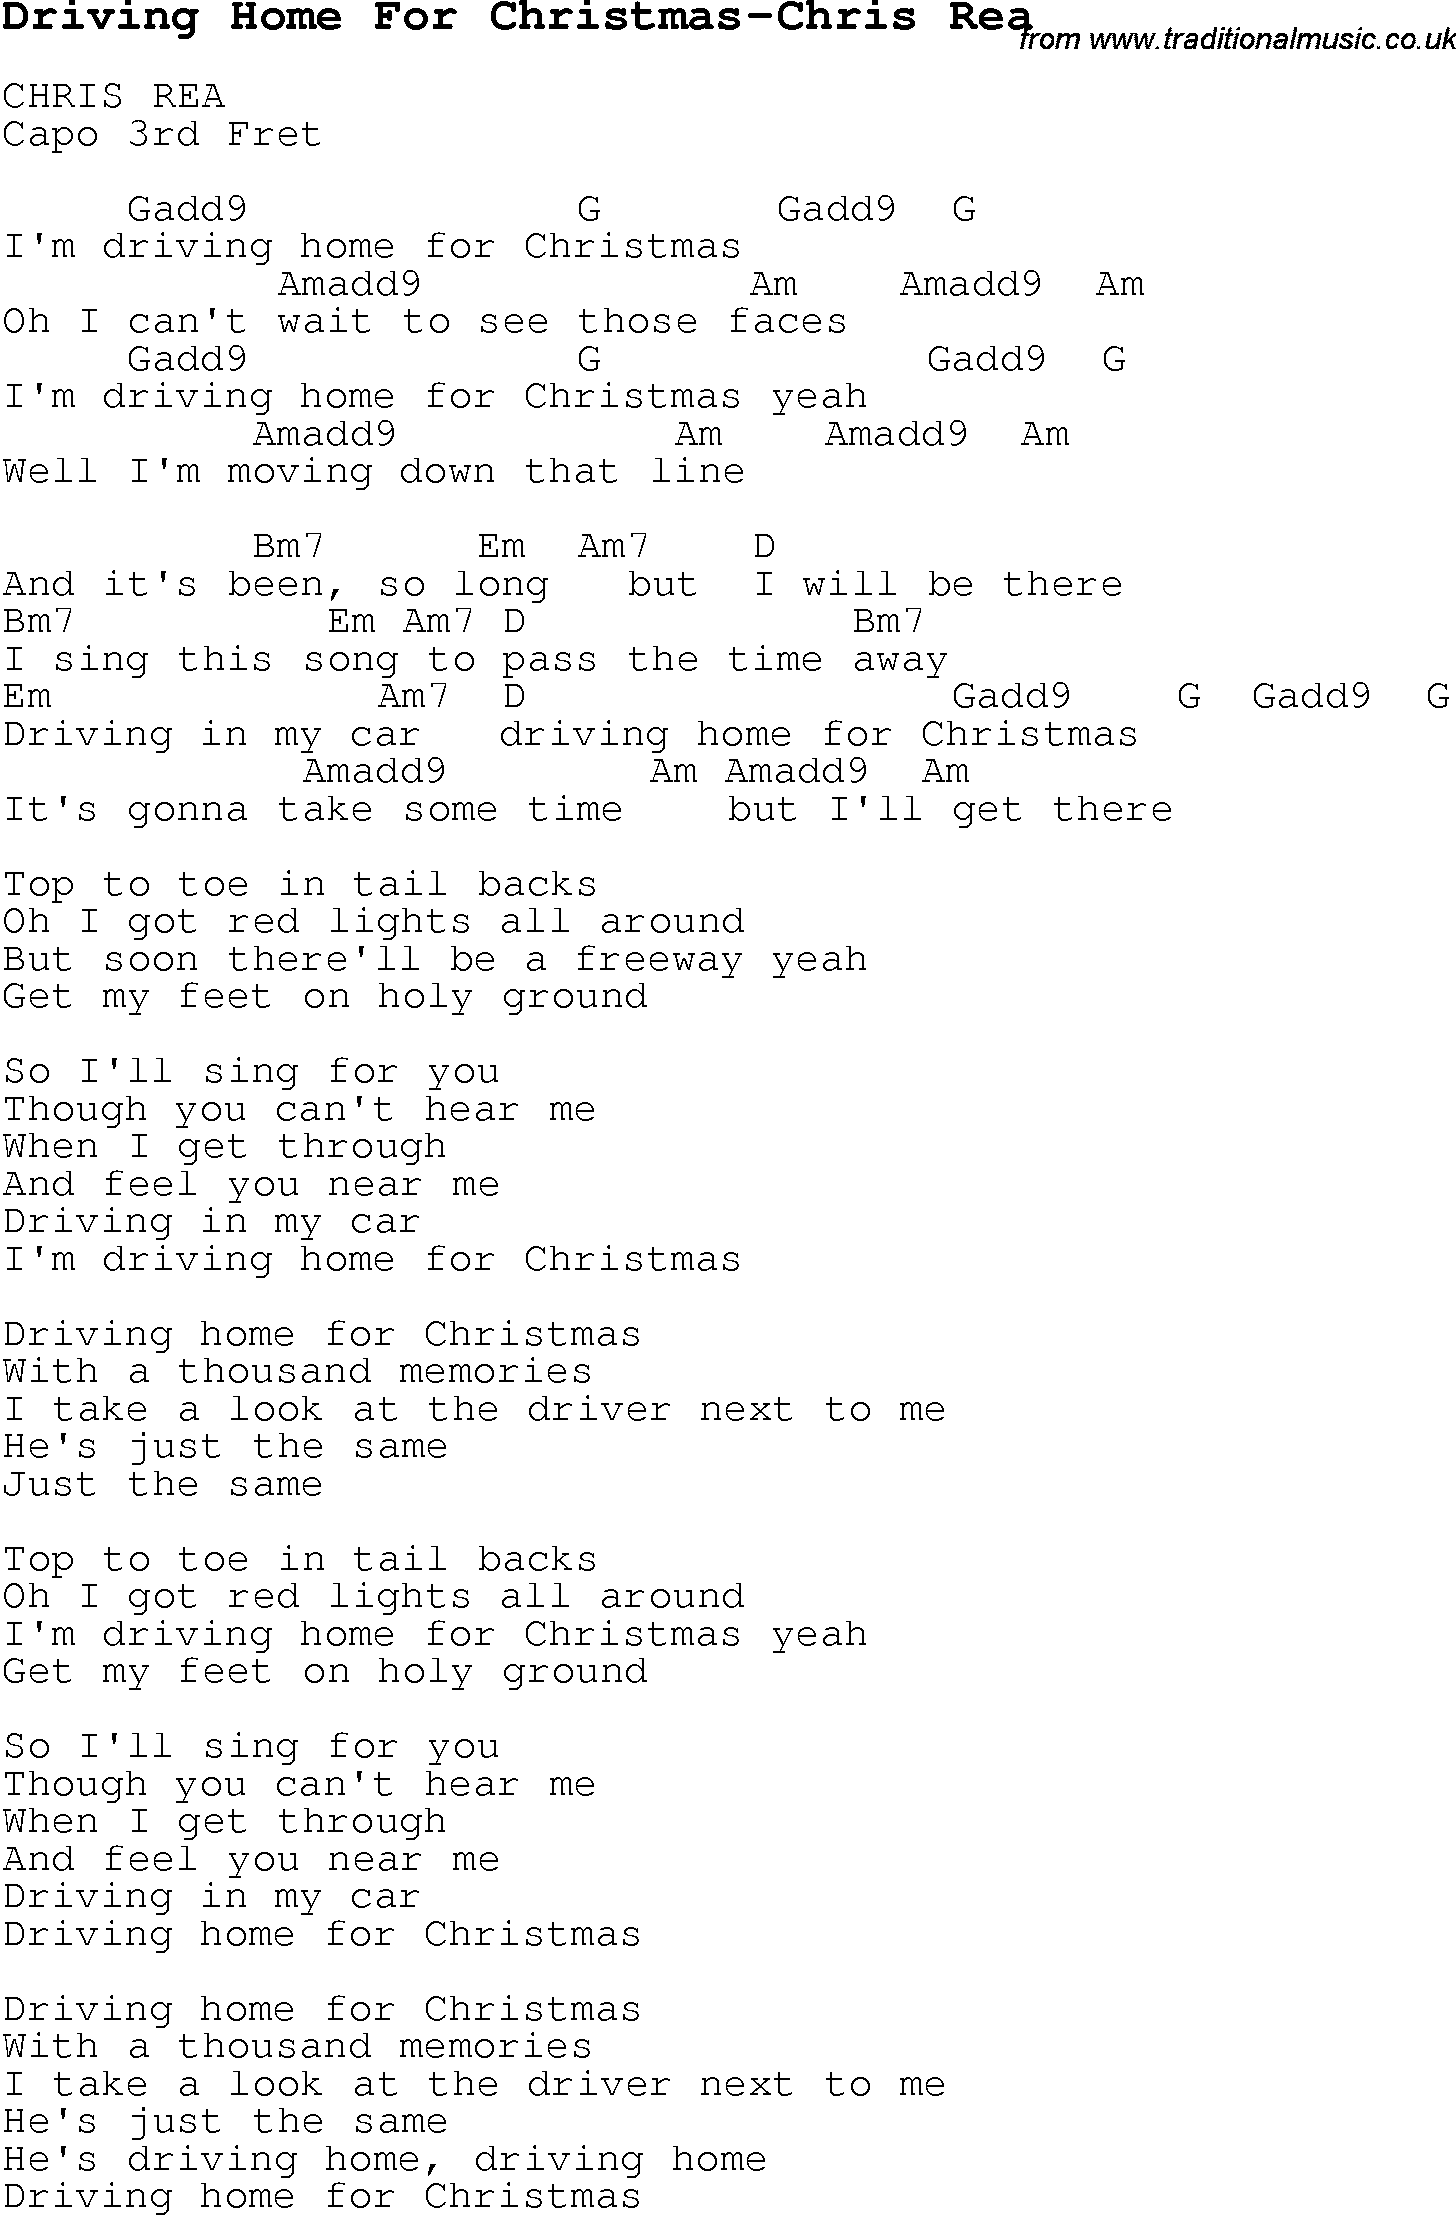 Ill Be Home For Christmas Chords.Christmas Carol Song Lyrics With Chords For Driving Home For